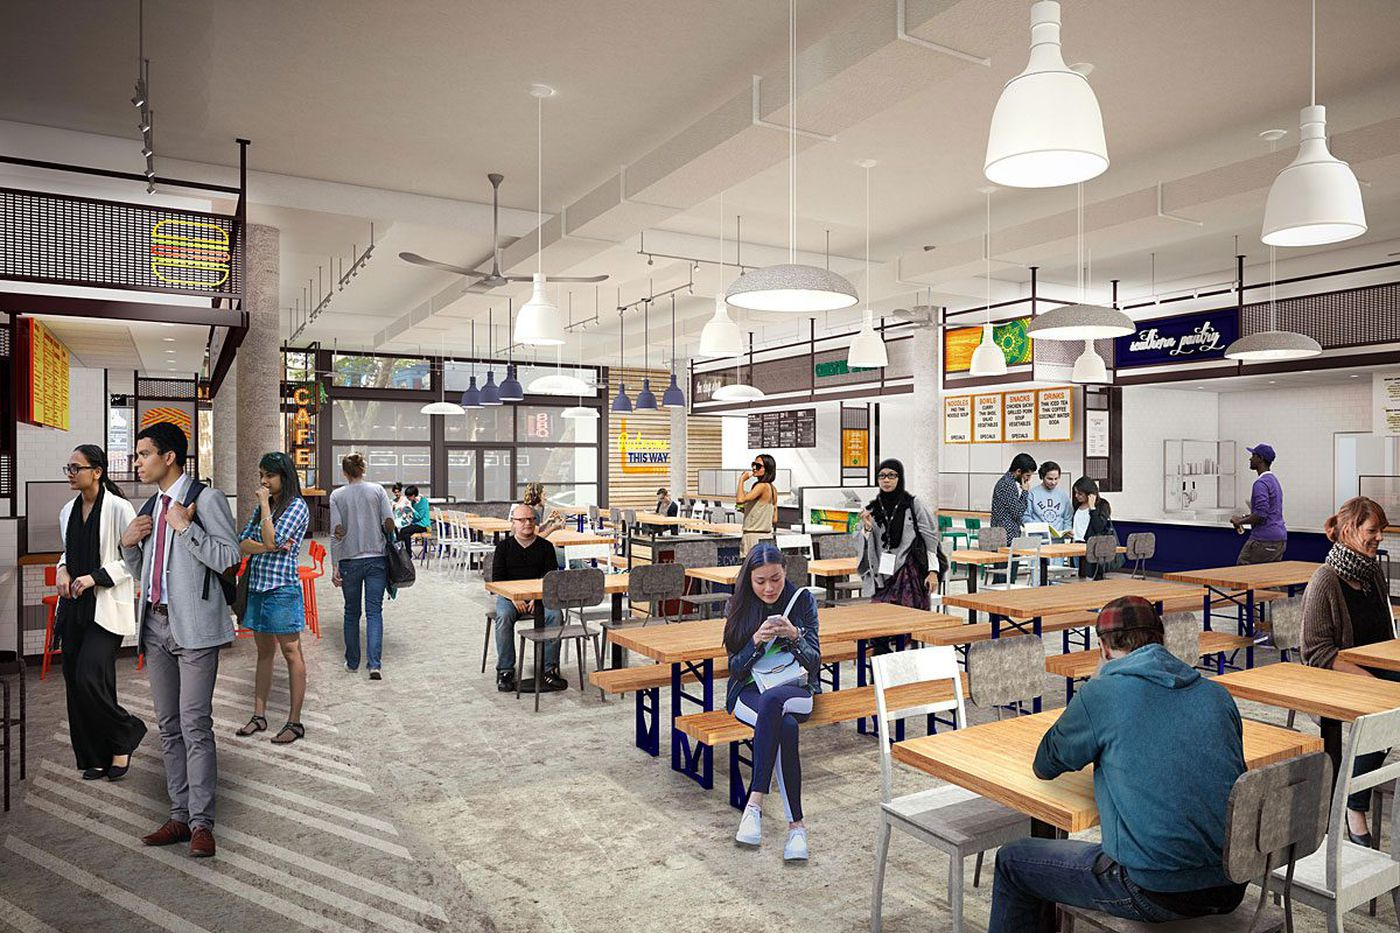 Penn signs Goldie and other shops for new food hall